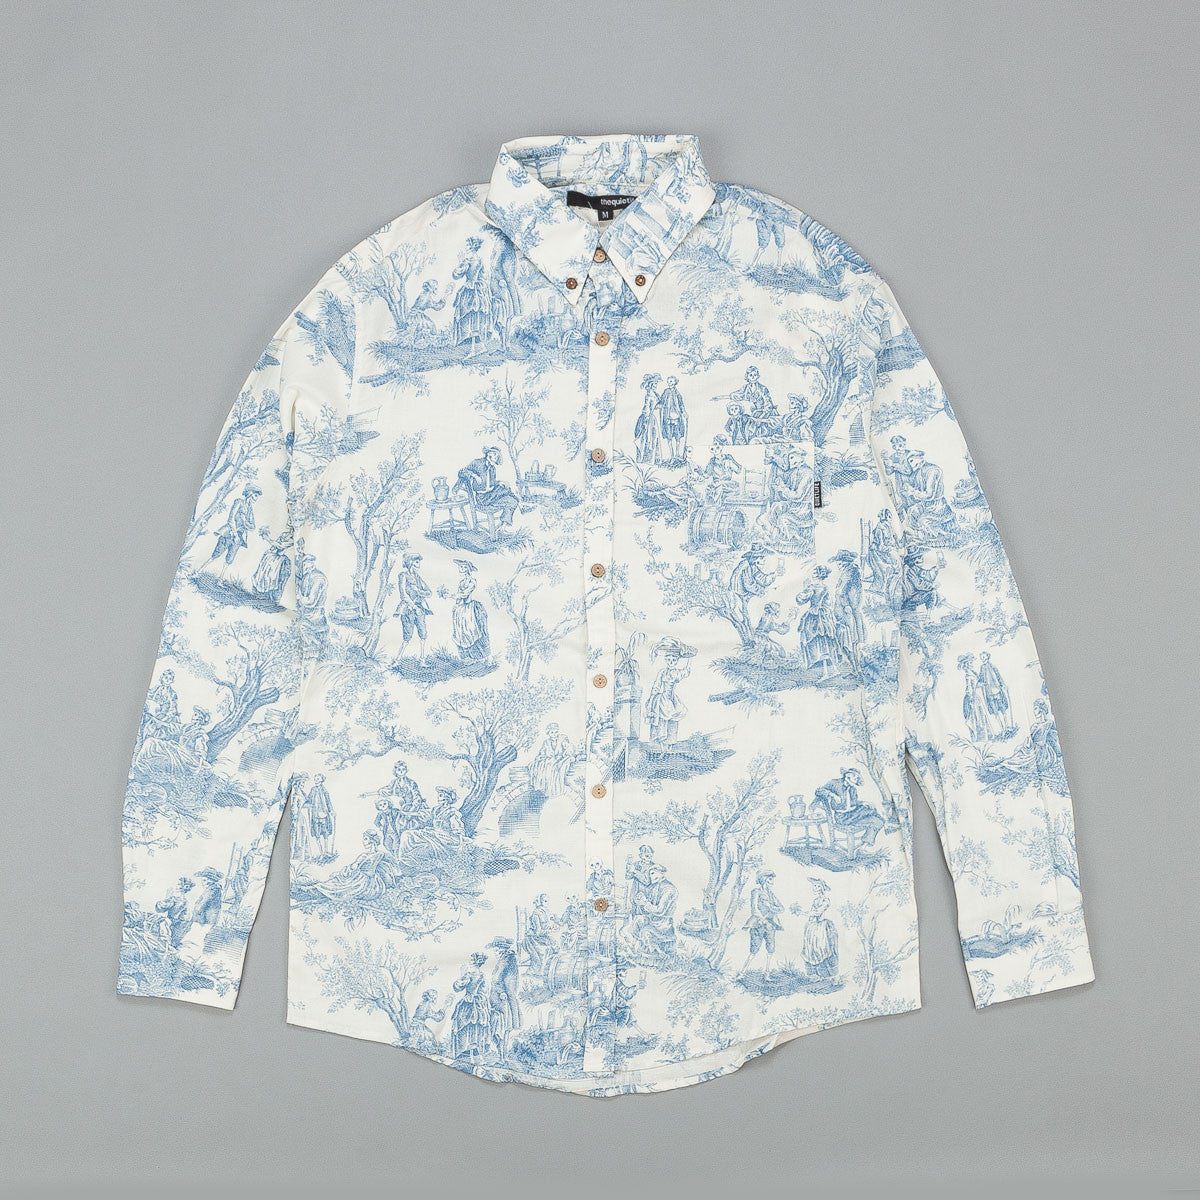 The Quiet Life Toile Shirt - Blue / White